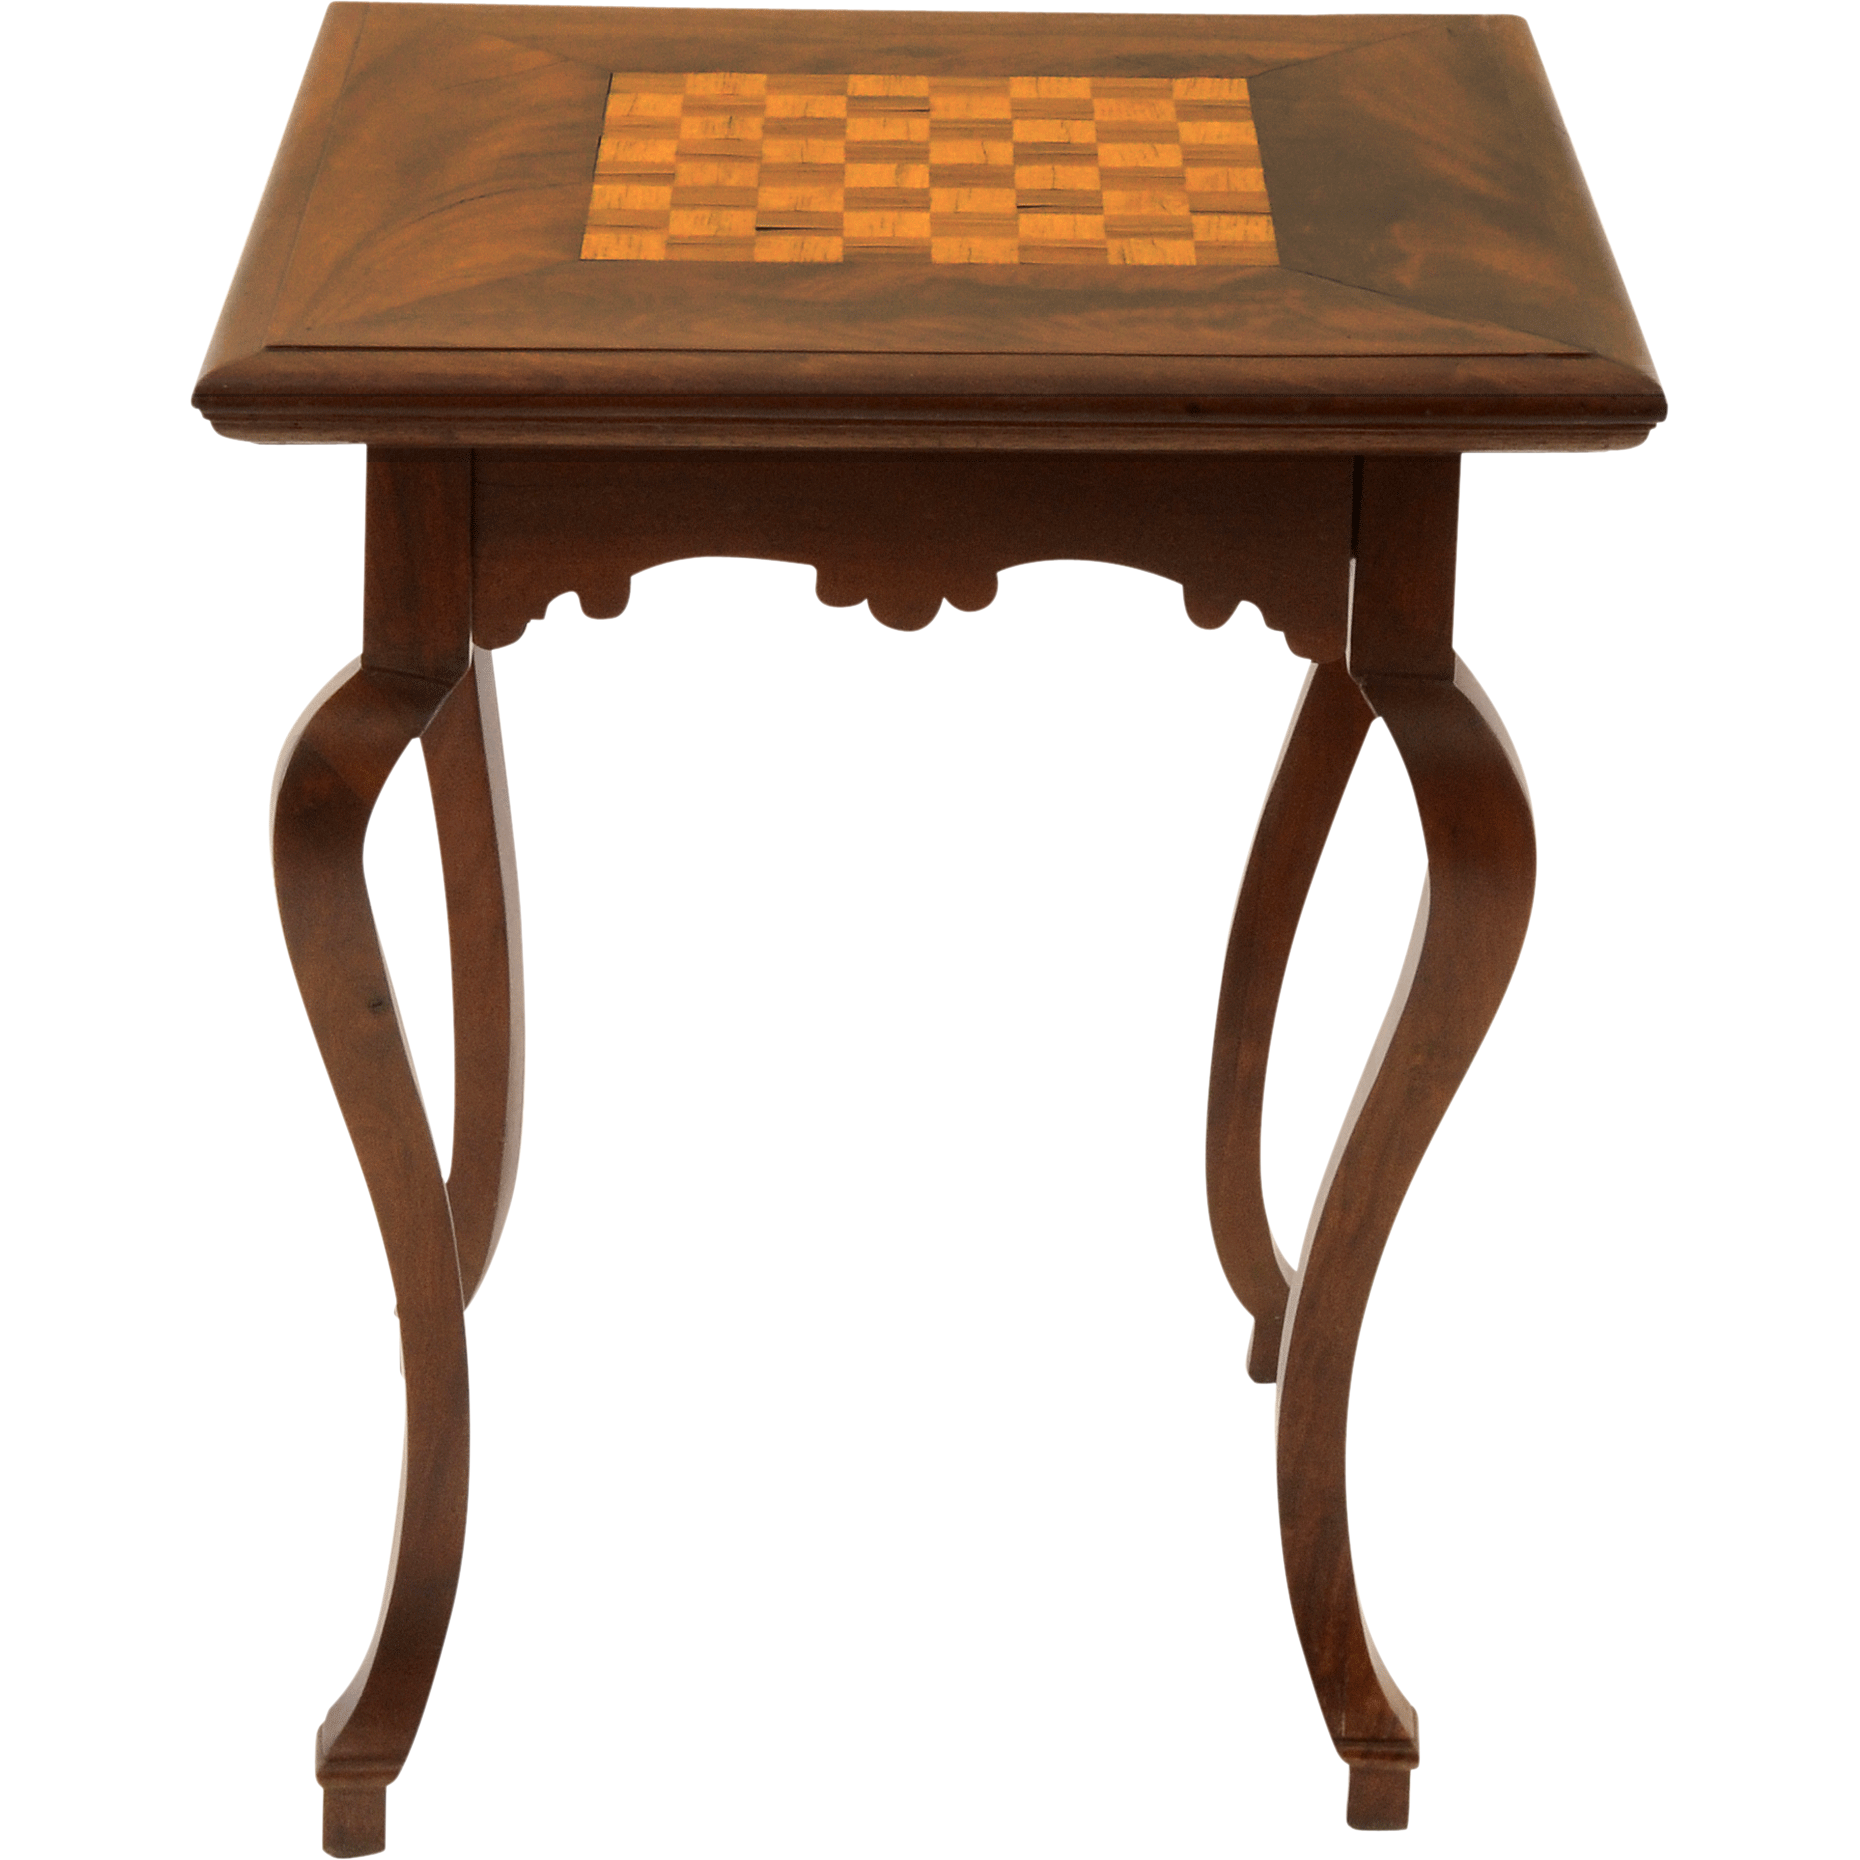 American Game Table From the Estate of Ida Lupino